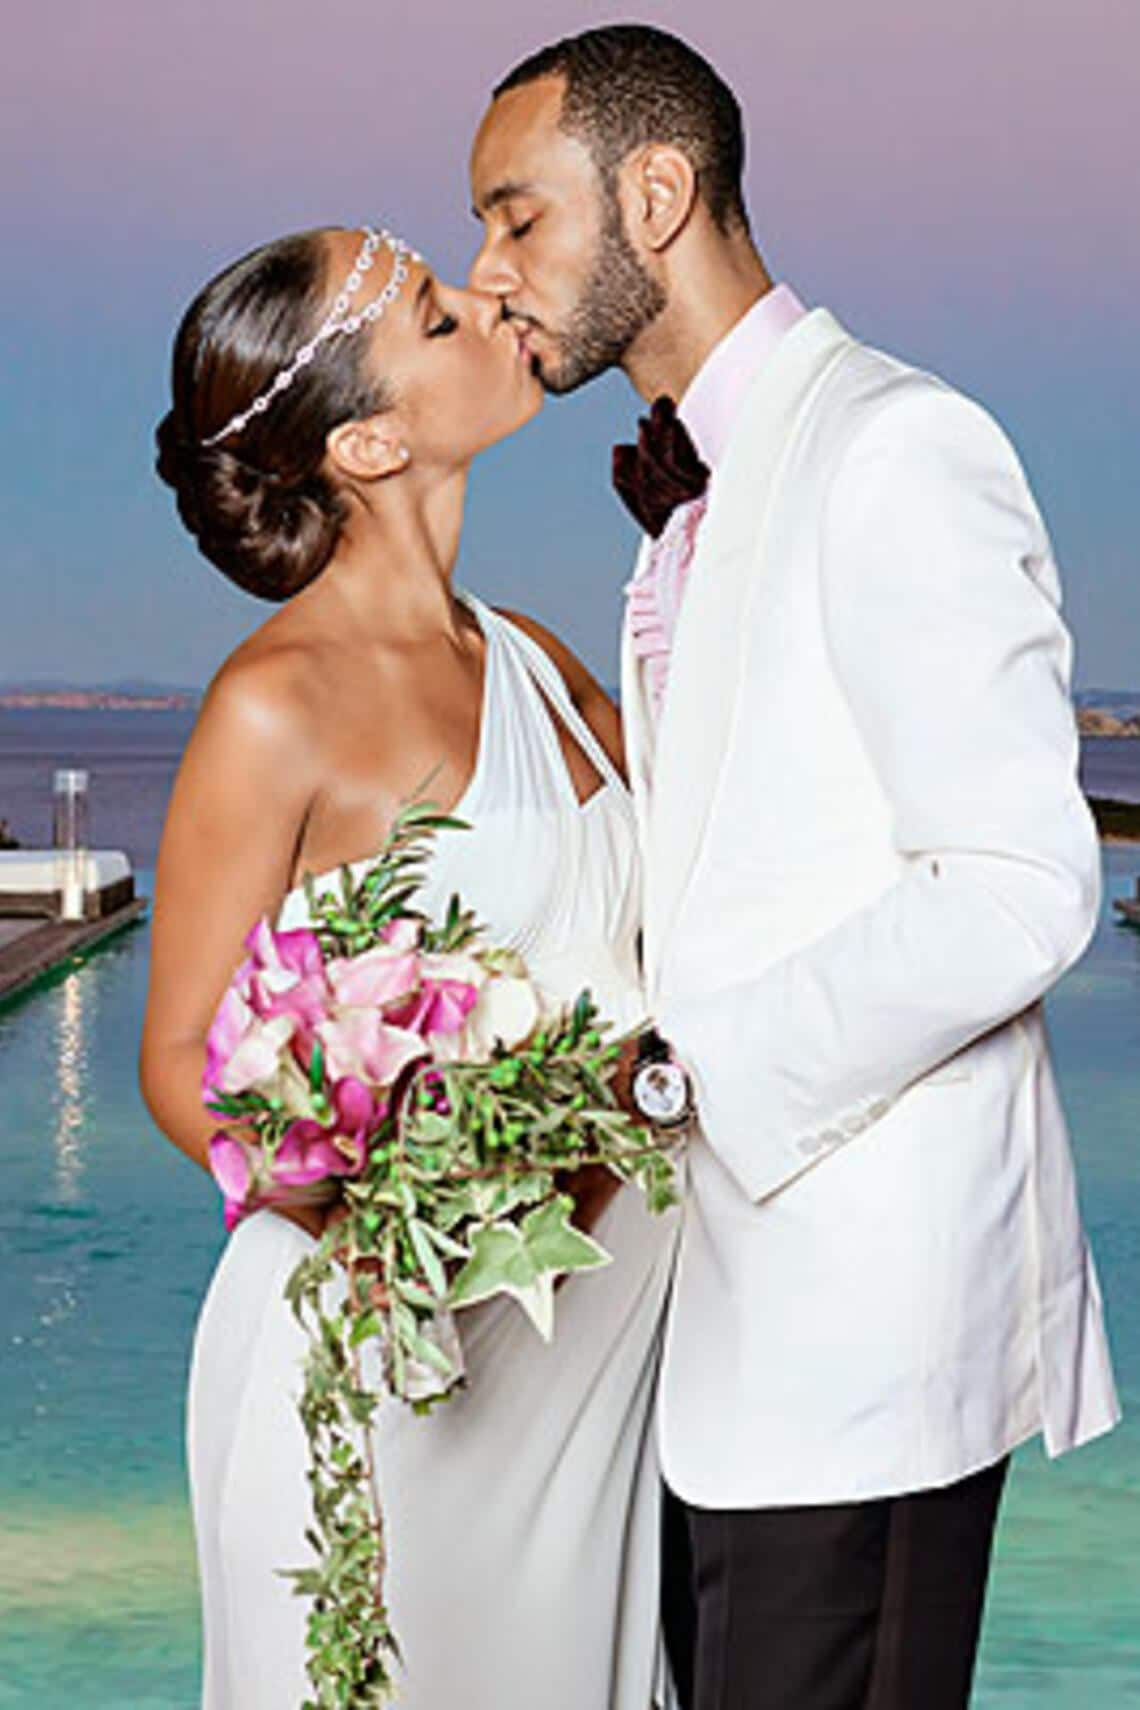 2.8. Hochzeitsfoto: Alicia Keys heiratet Swizz Beatz